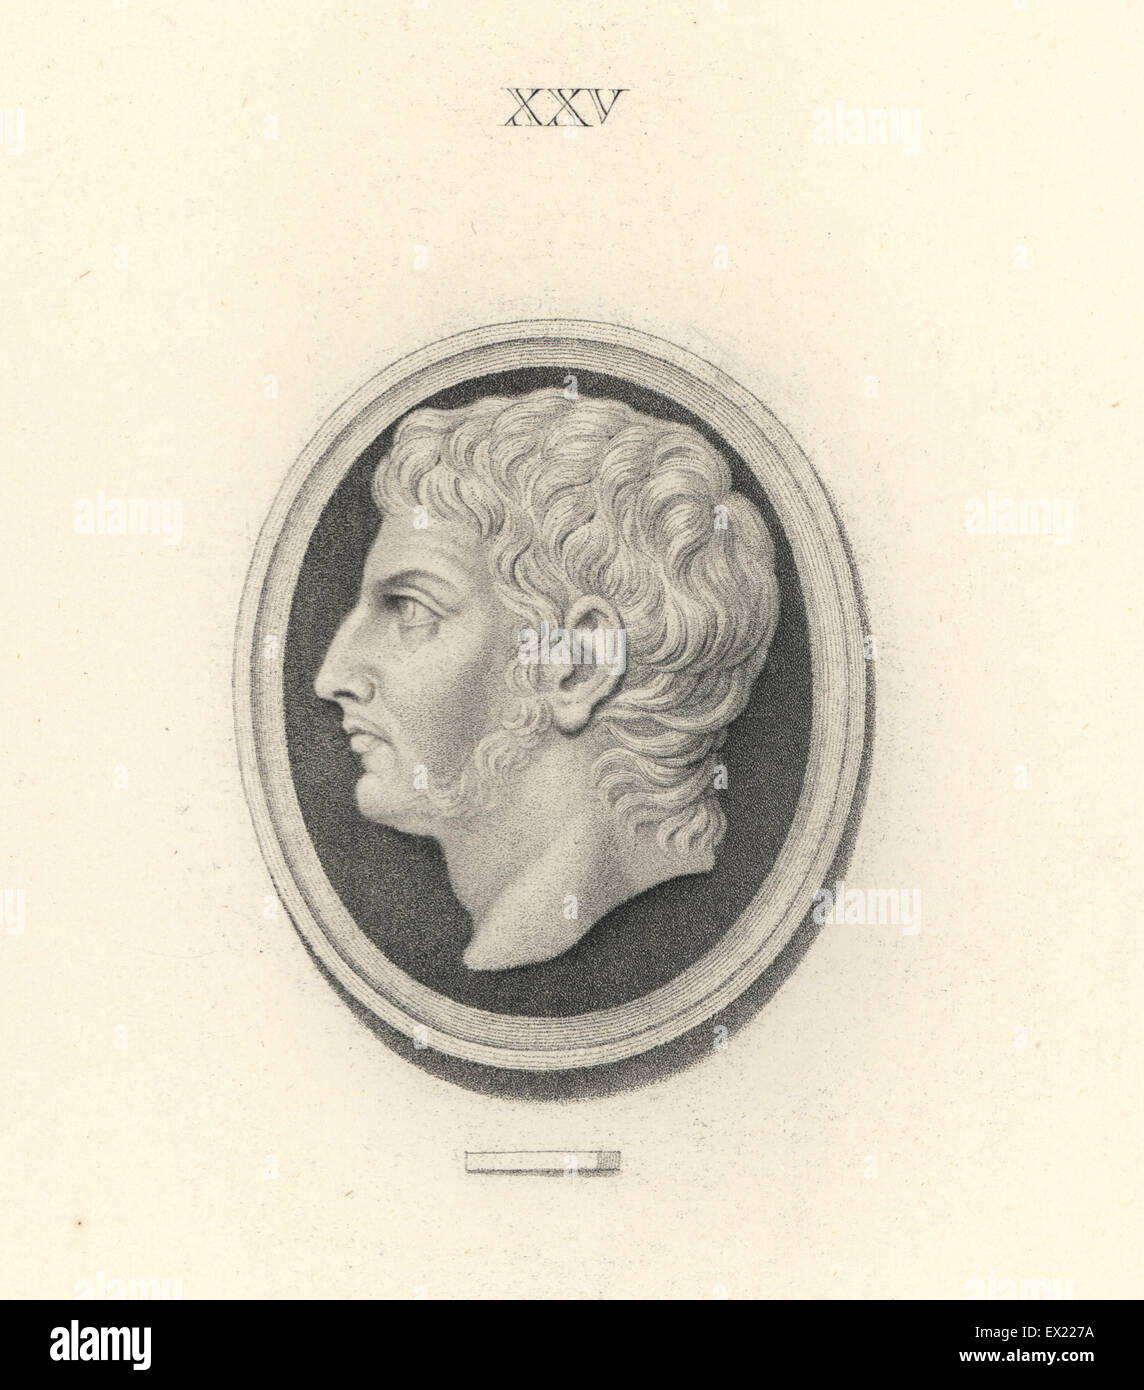 Drusus, son of Roman Emperor Tiberius. Copperplate engraving by Francesco Bartolozzi from 108 Plates of Antique - Stock Image